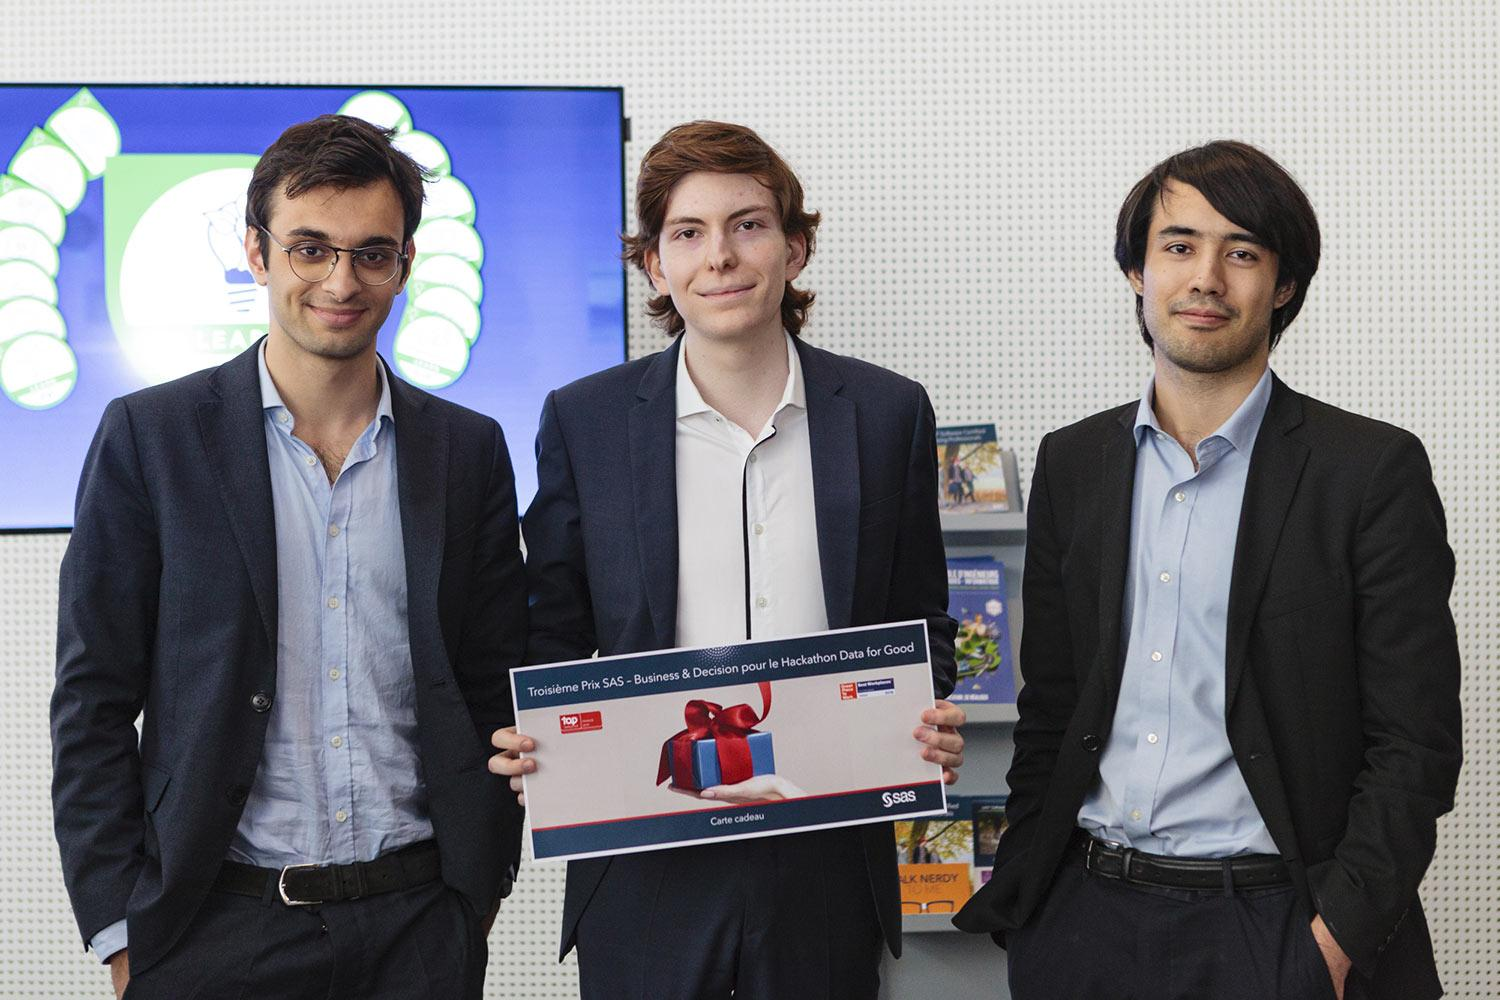 Group photo of three male winners from SAS Hackathon event - 3rd Place